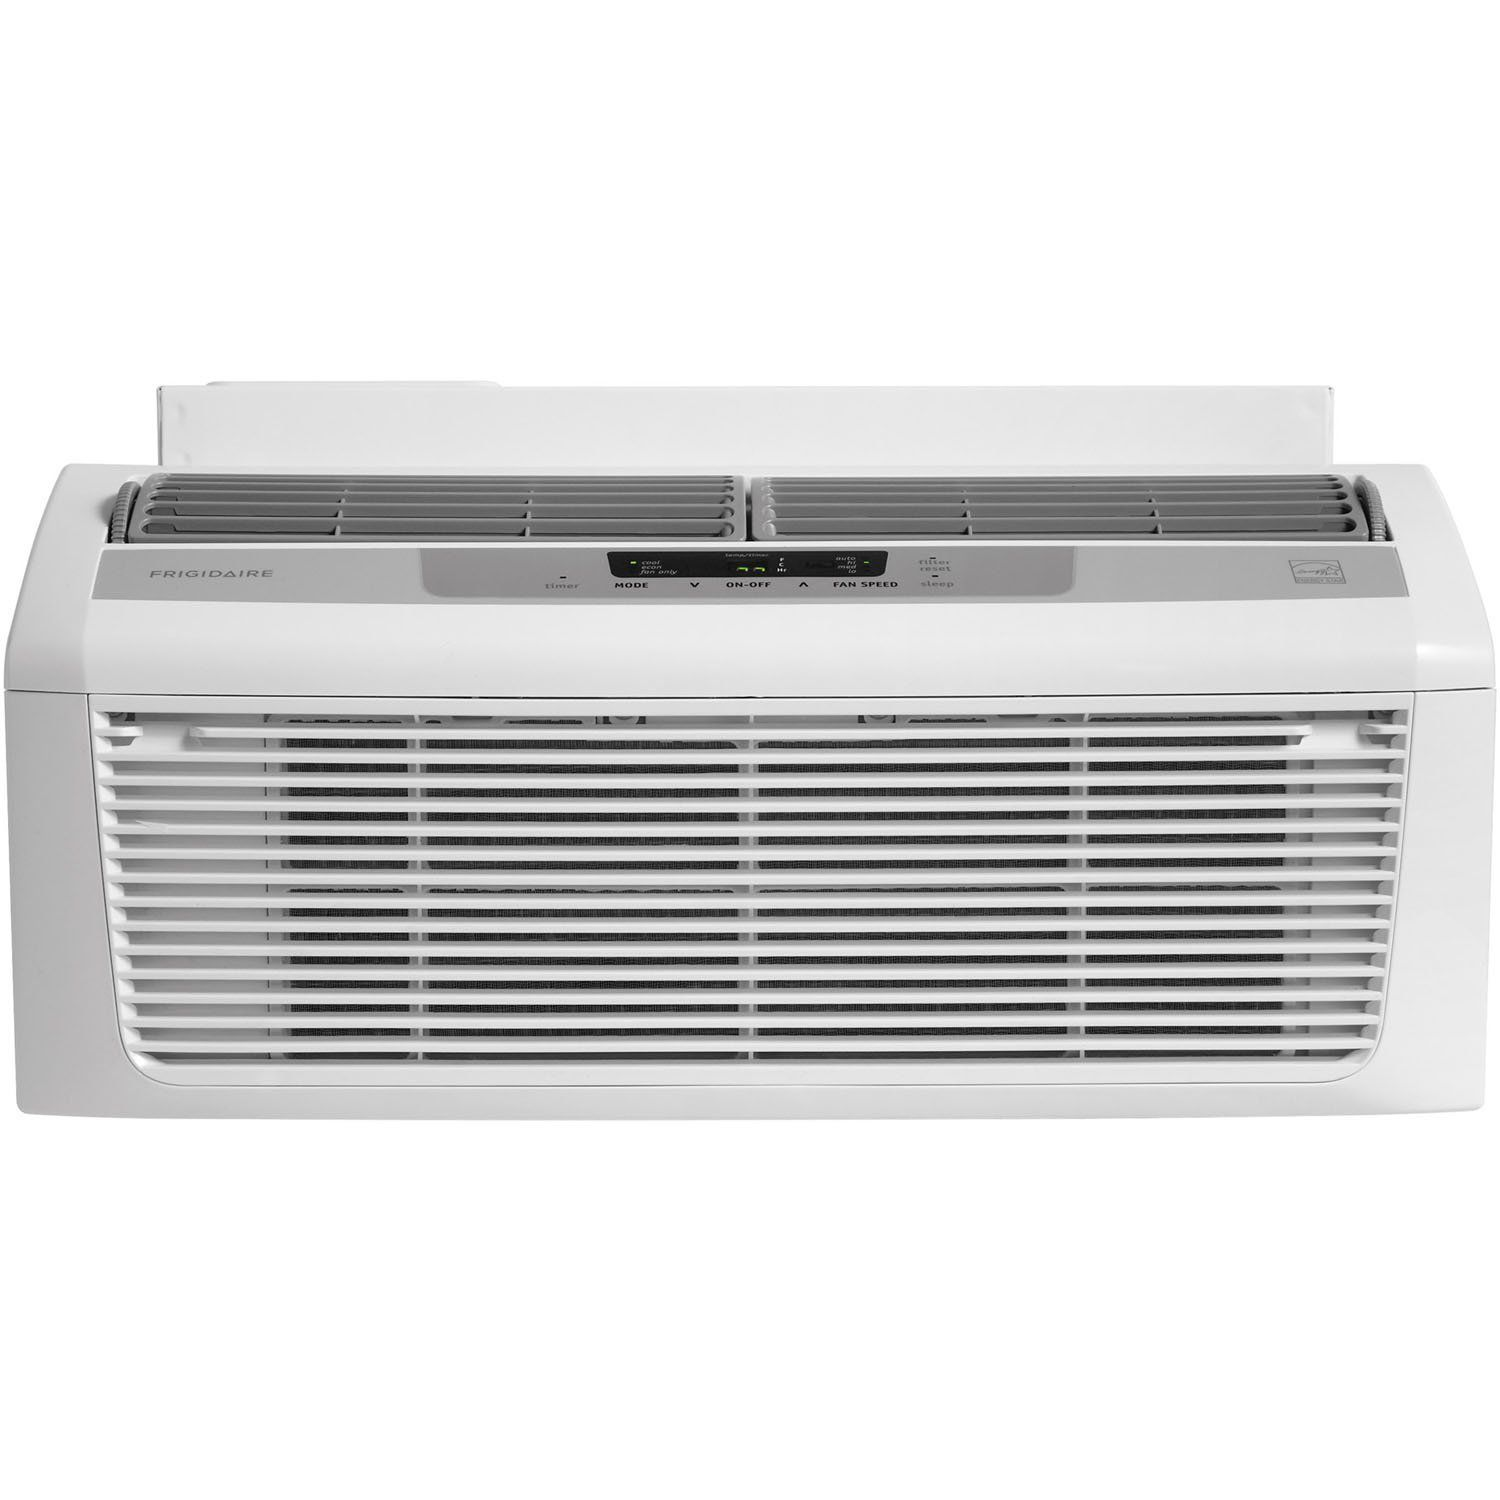 Frigidaire Ffrl0633q1 6 000 Btu Window Mounted Room Air Conditioner Shopping Comparisons Low Profile Air Conditioner Air Conditioner Heater Window Air Co